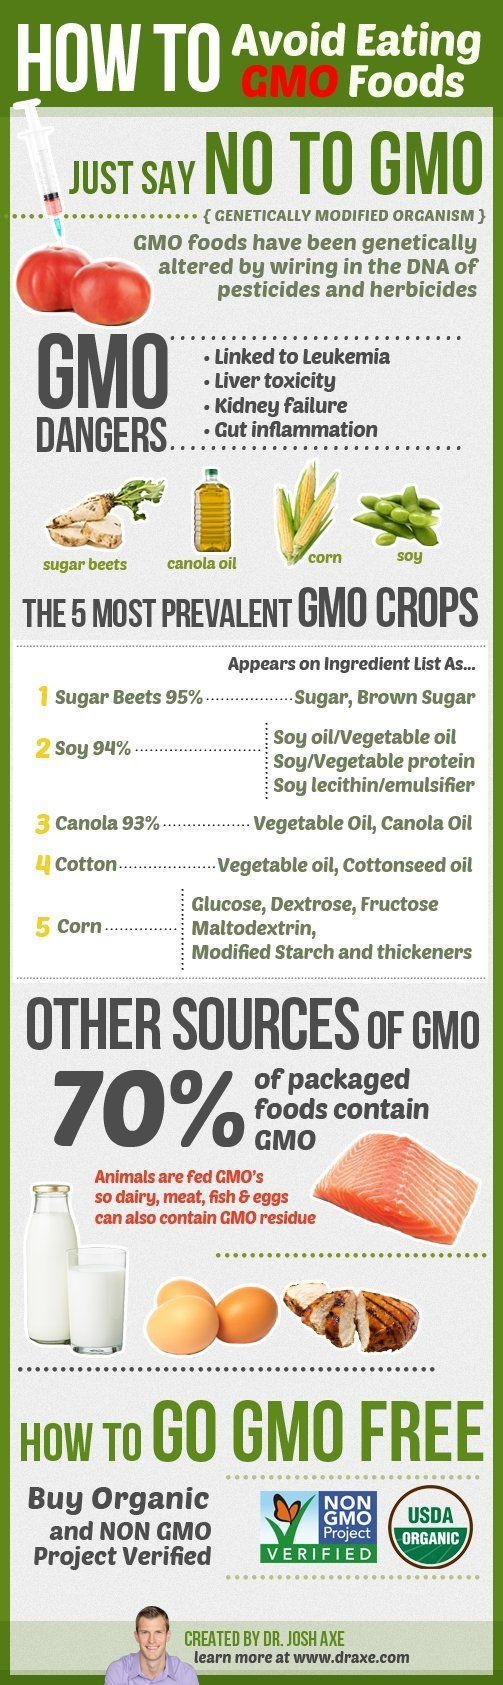 Genetically Modified Foods (GMO) Linked to Tumors, Allergies and Early Death - Dr. Axe